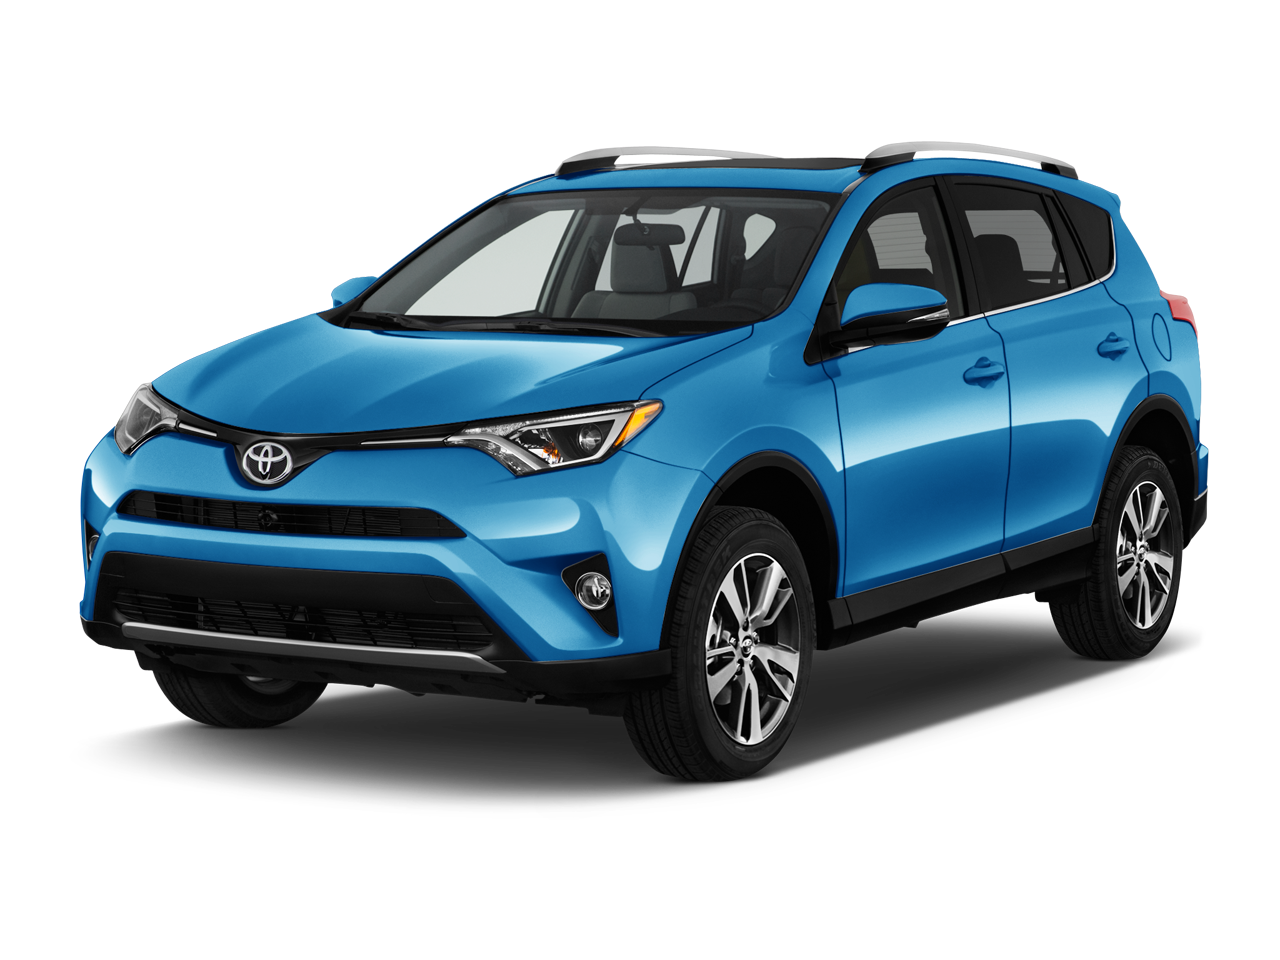 2017 toyota rav4 for sale in rockford il anderson toyota. Black Bedroom Furniture Sets. Home Design Ideas